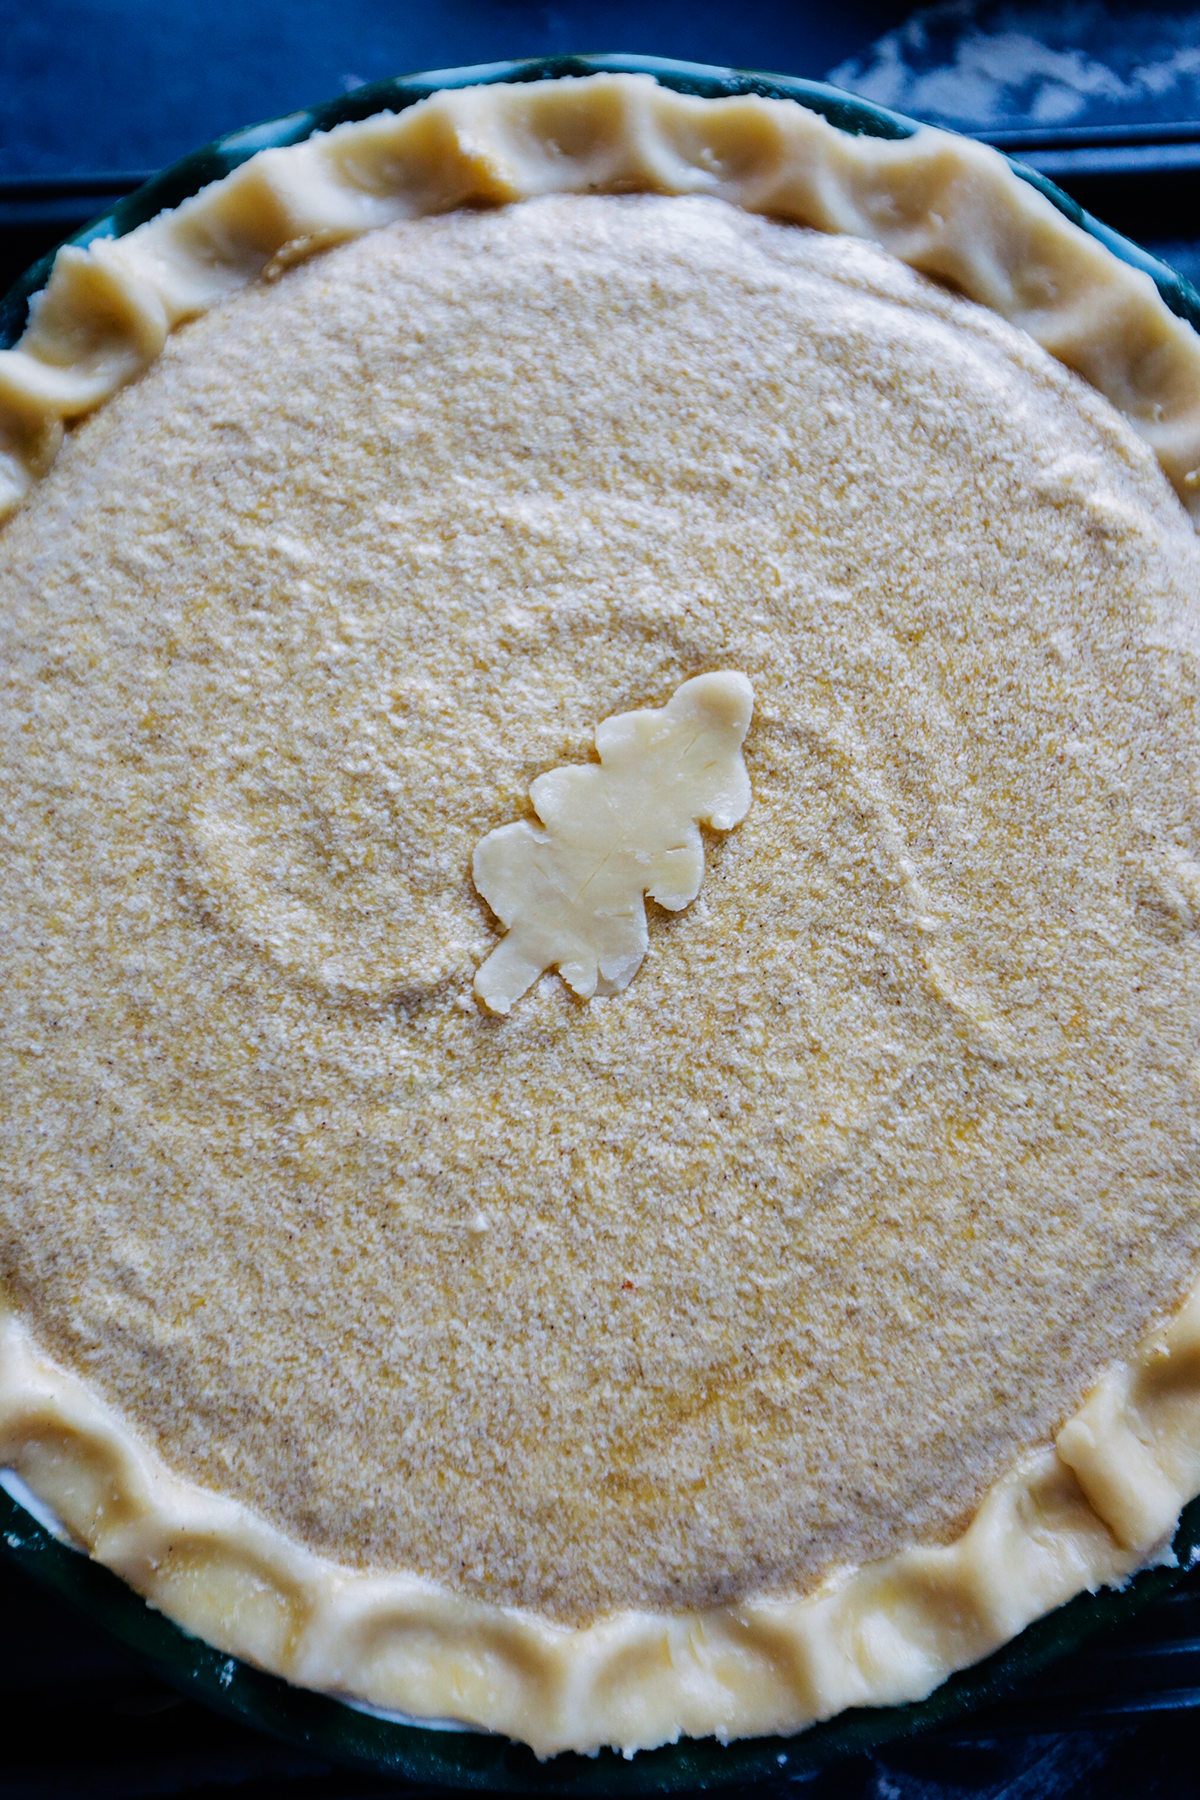 Pie crust with filling